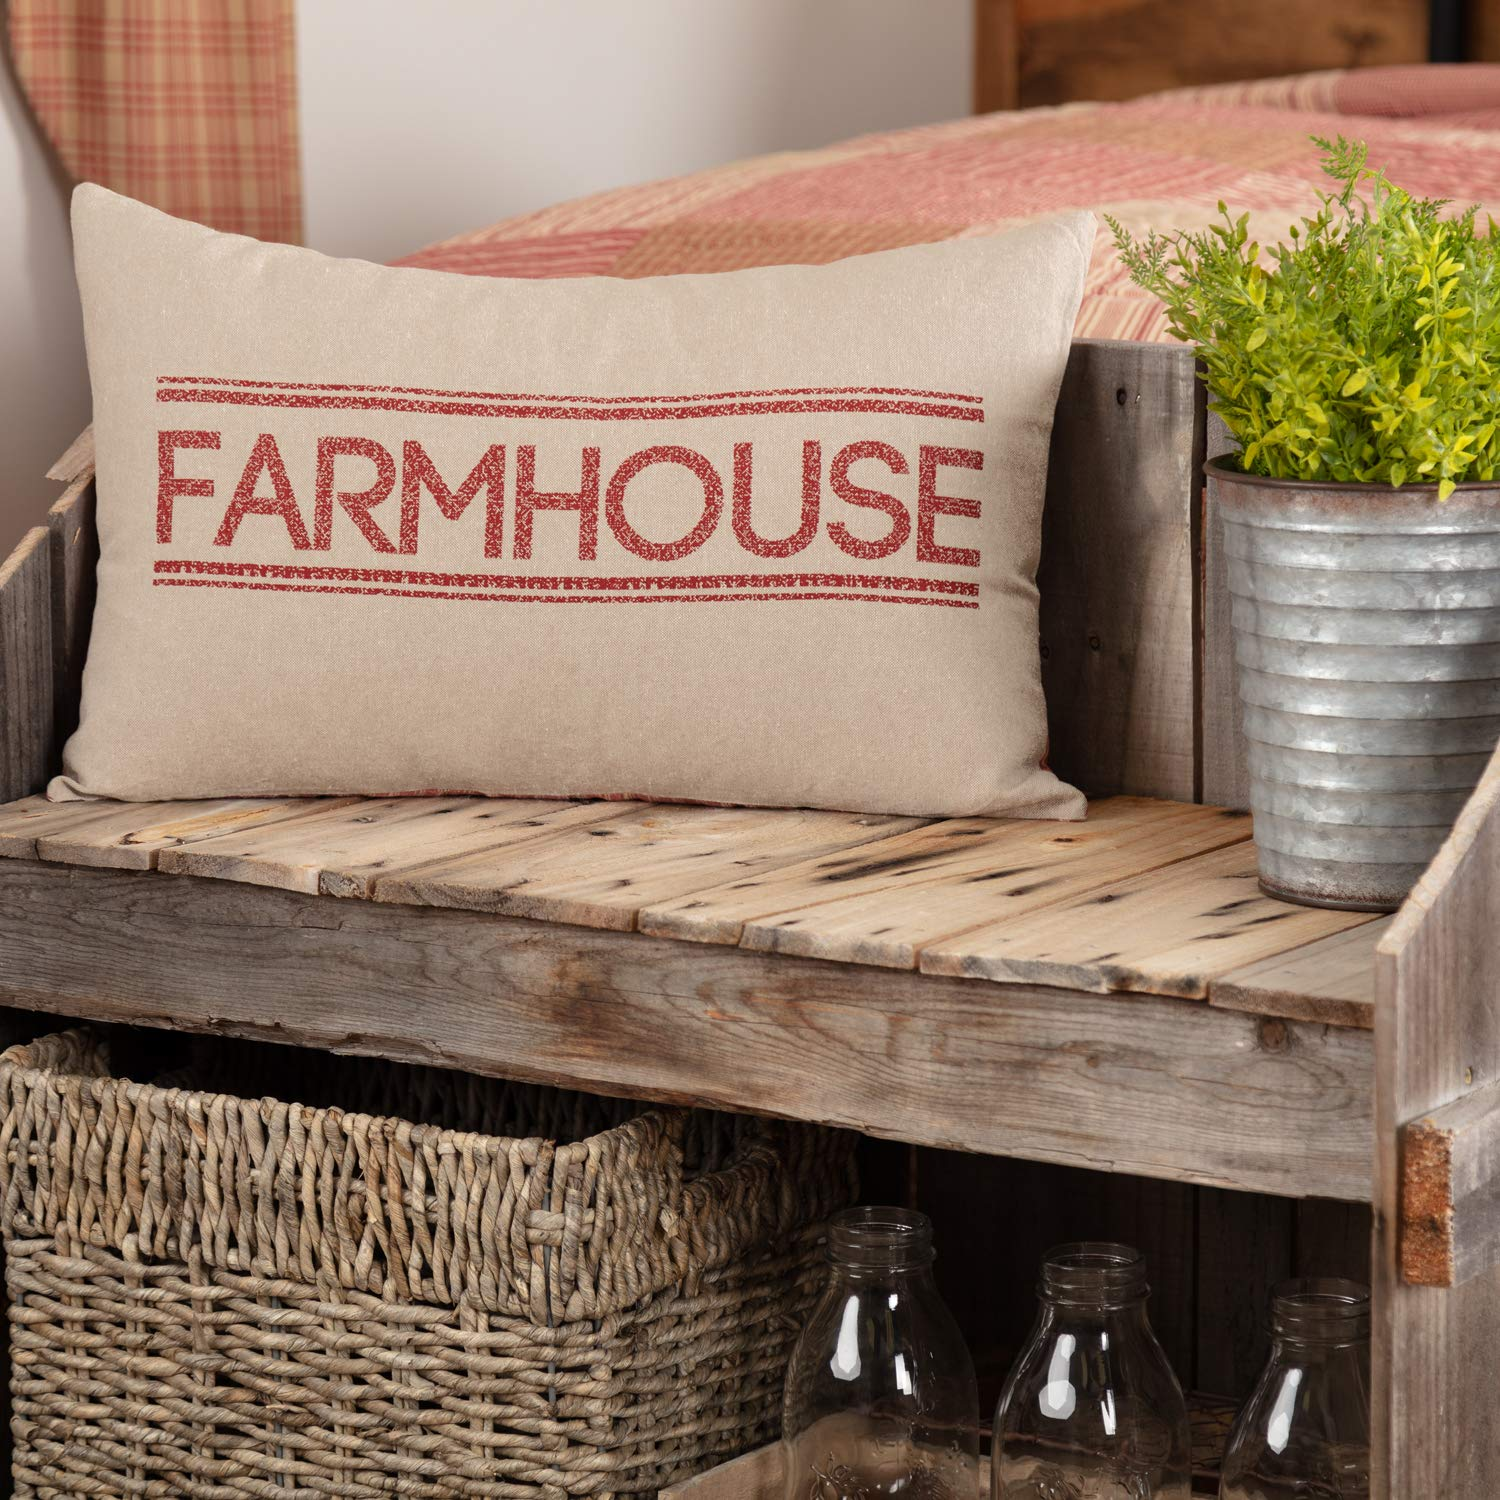 VHC Brands Farmhouse Bedding Miller Farm Charcoal Cotton Stenciled Chambray Text Rectangle Cover Insert Pillow Red Country